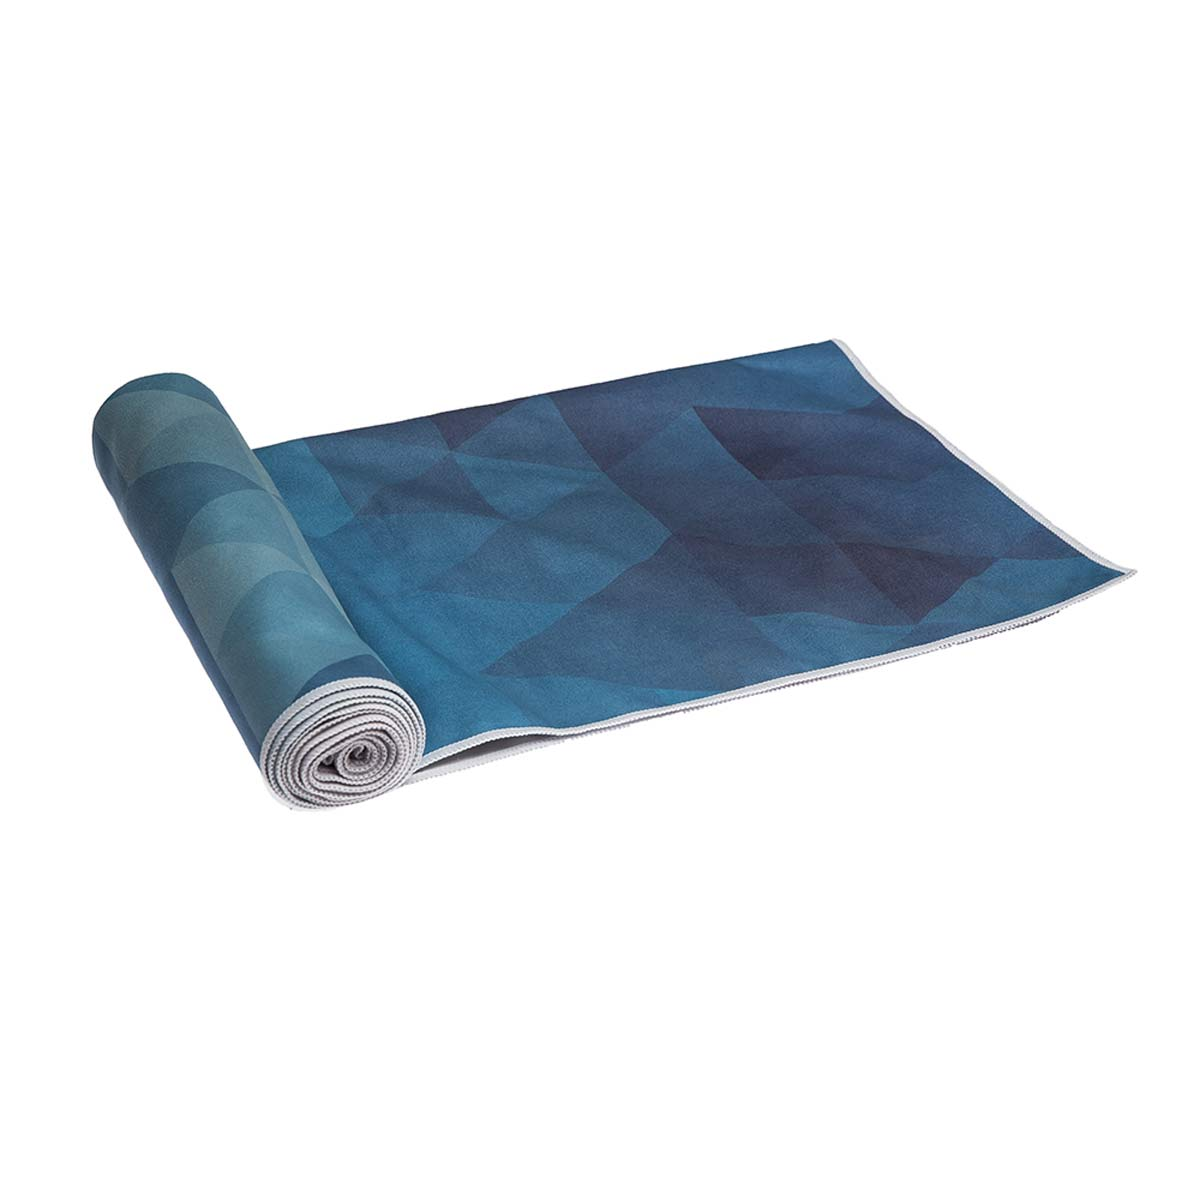 Yoga Towel Uk: Tribeca Love Micro Fibre Hot Yoga Towel